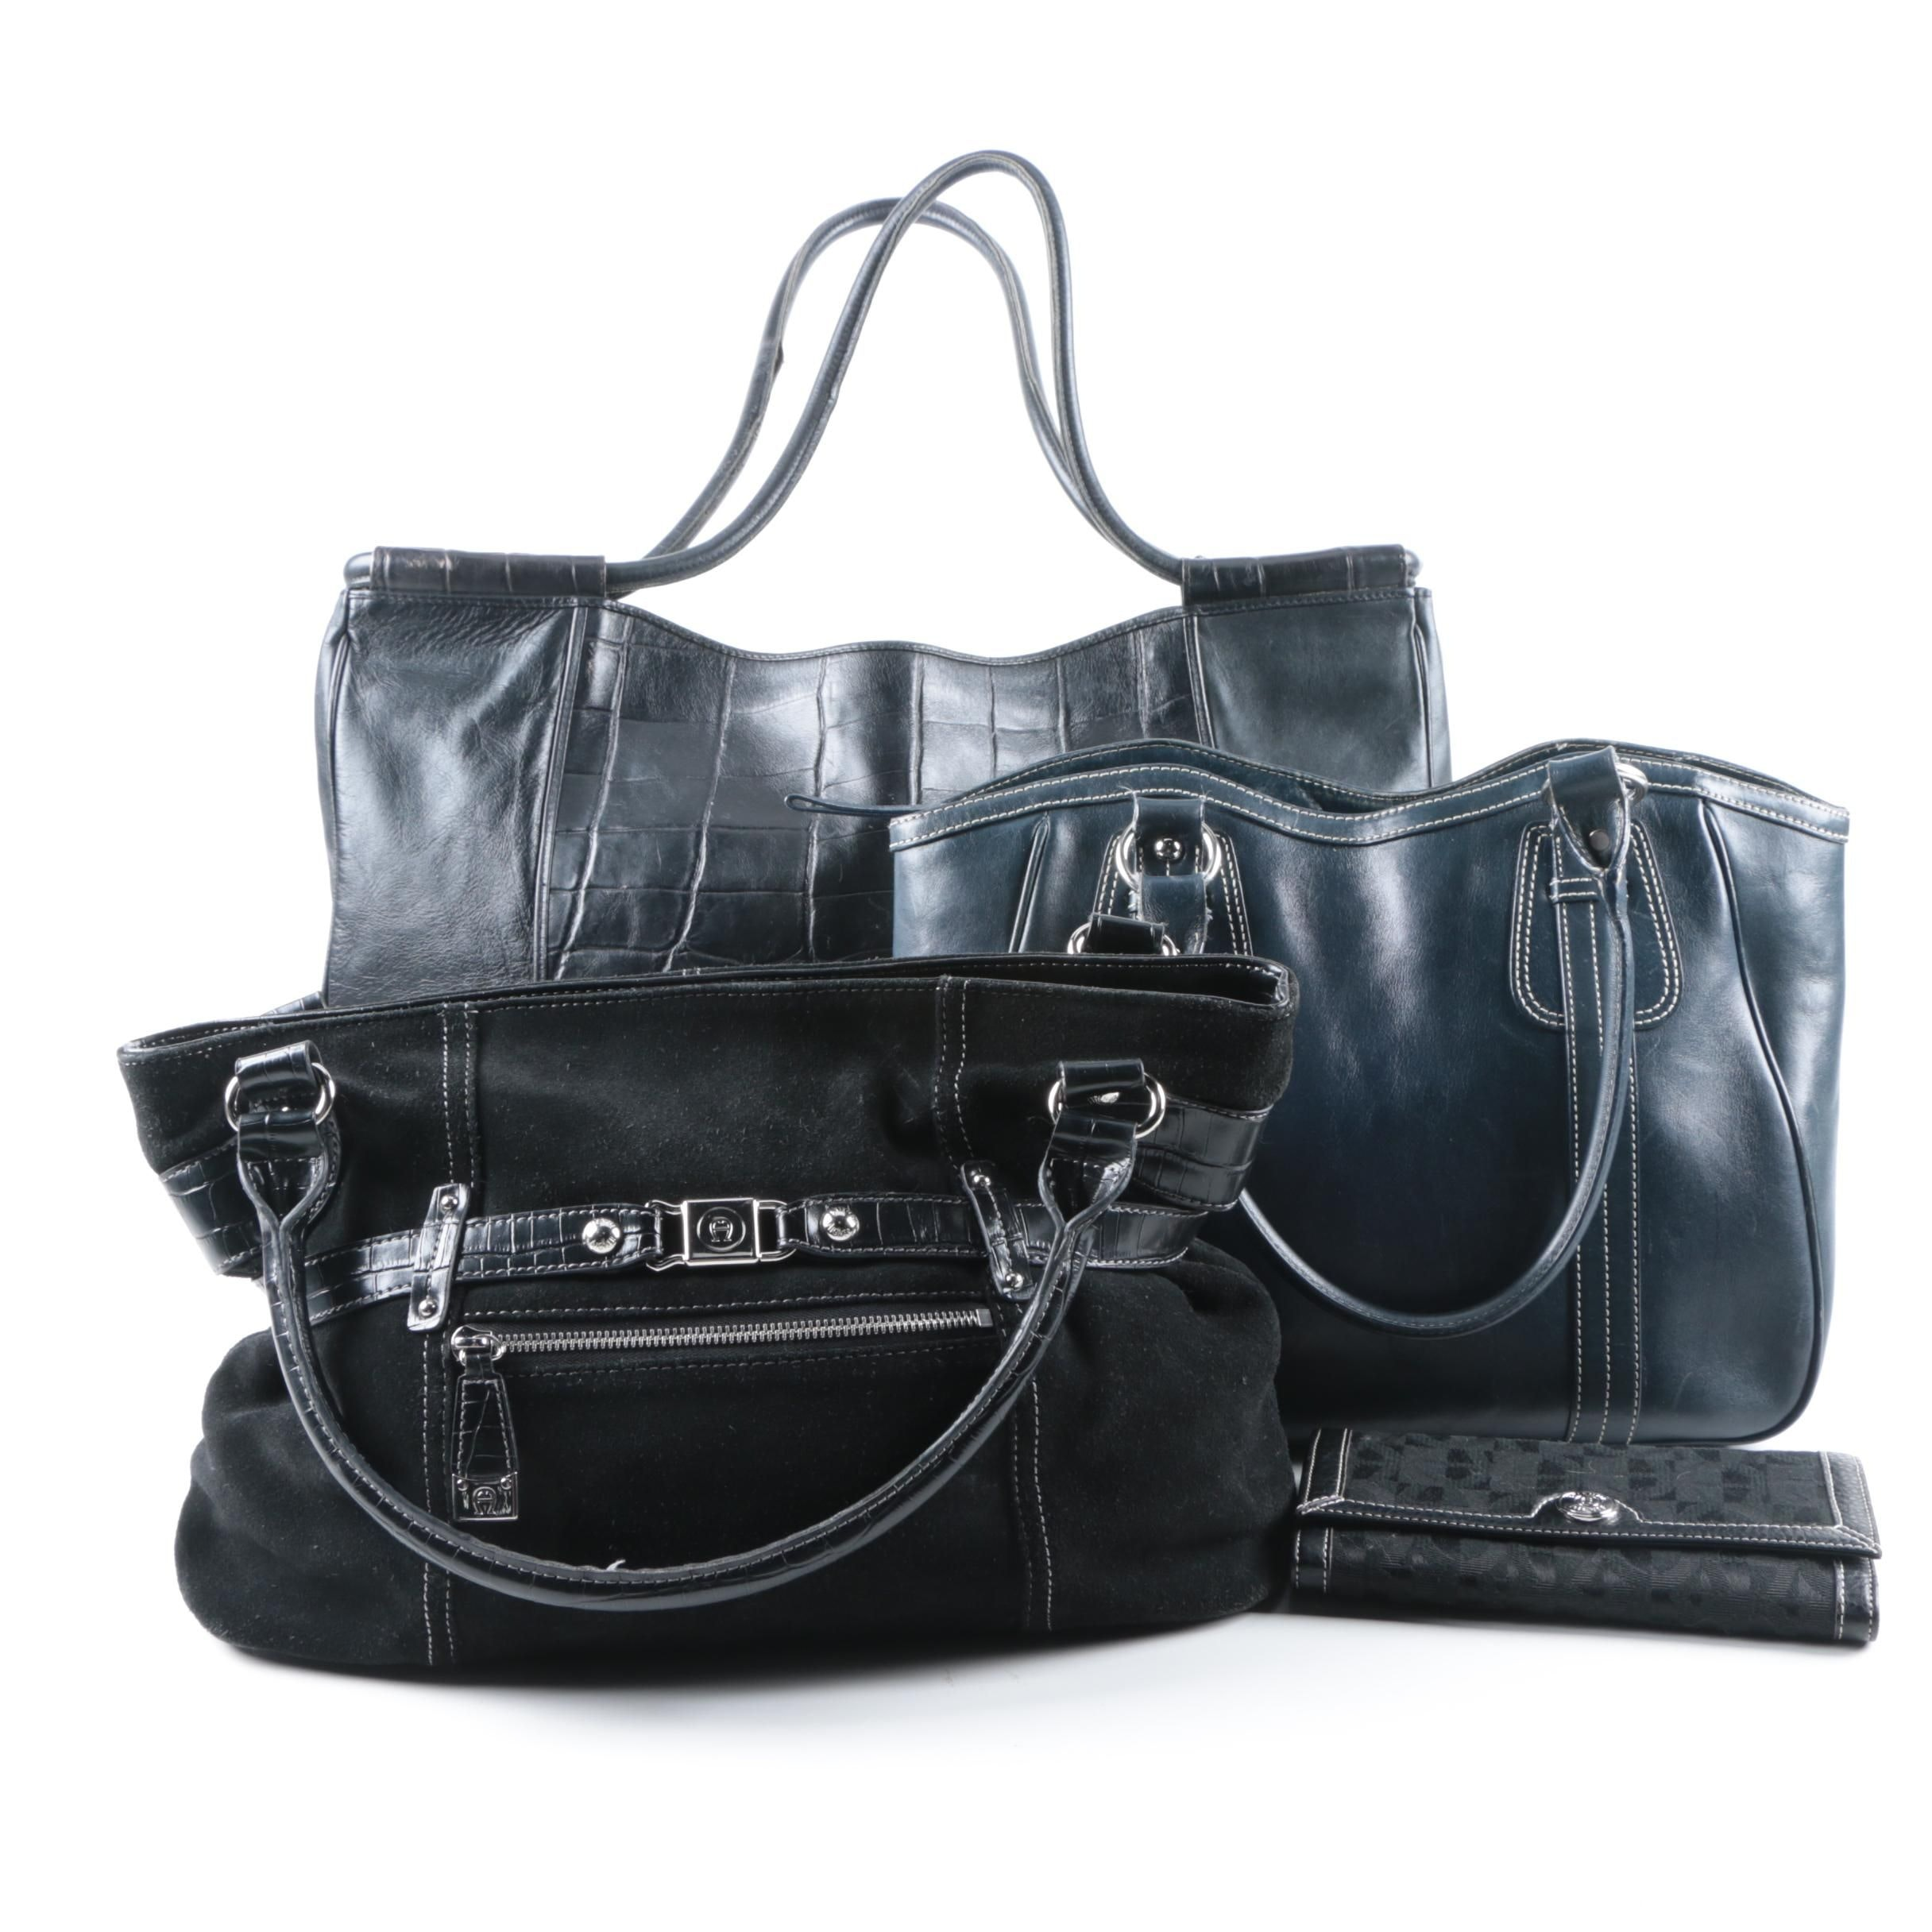 Leather Handbags and Wallet Including Etienne Aigner